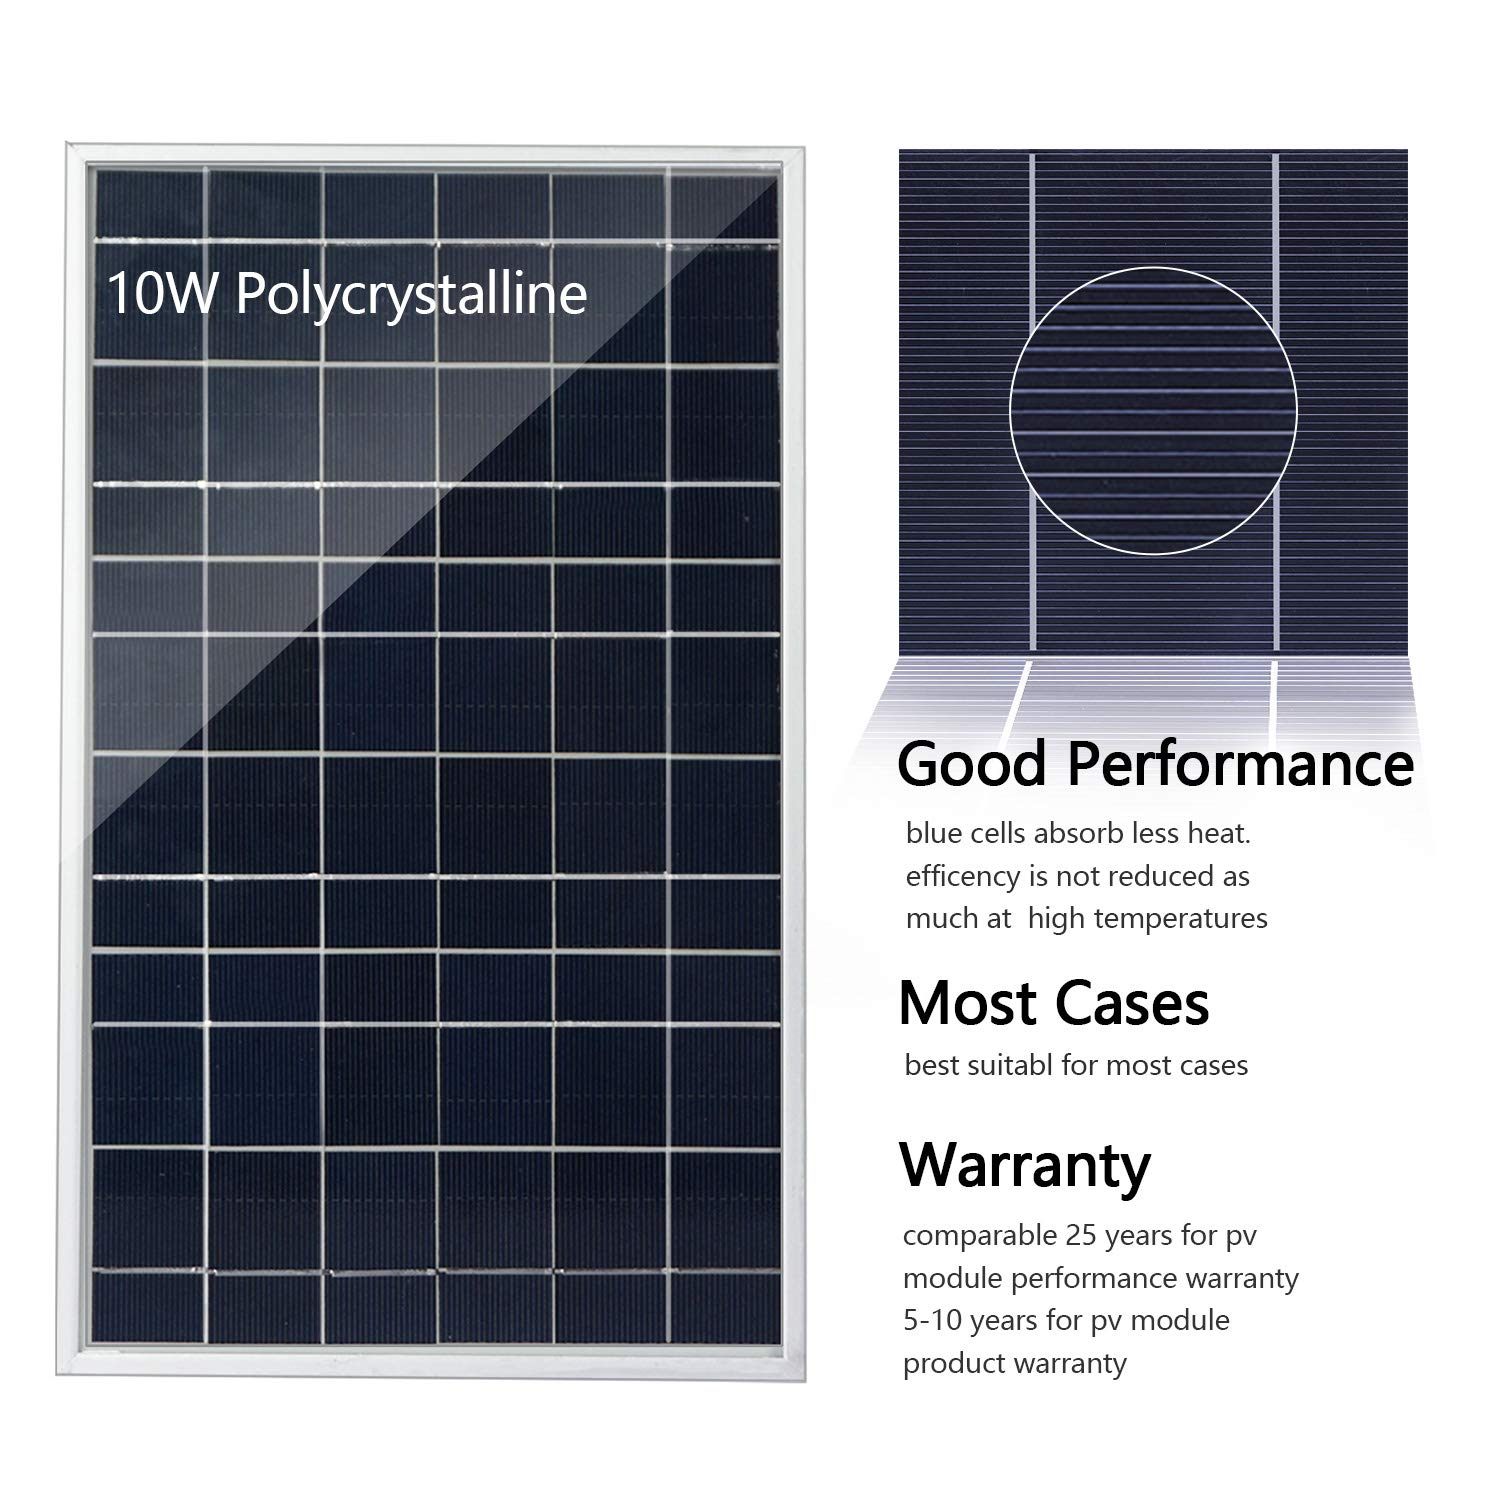 Amazon.com : ECO-WORTHY 10W PV Polycrystalline Solar Panel System kit W/ 3A  Charge Controller & 30A Battery Clips : Garden & Outdoor